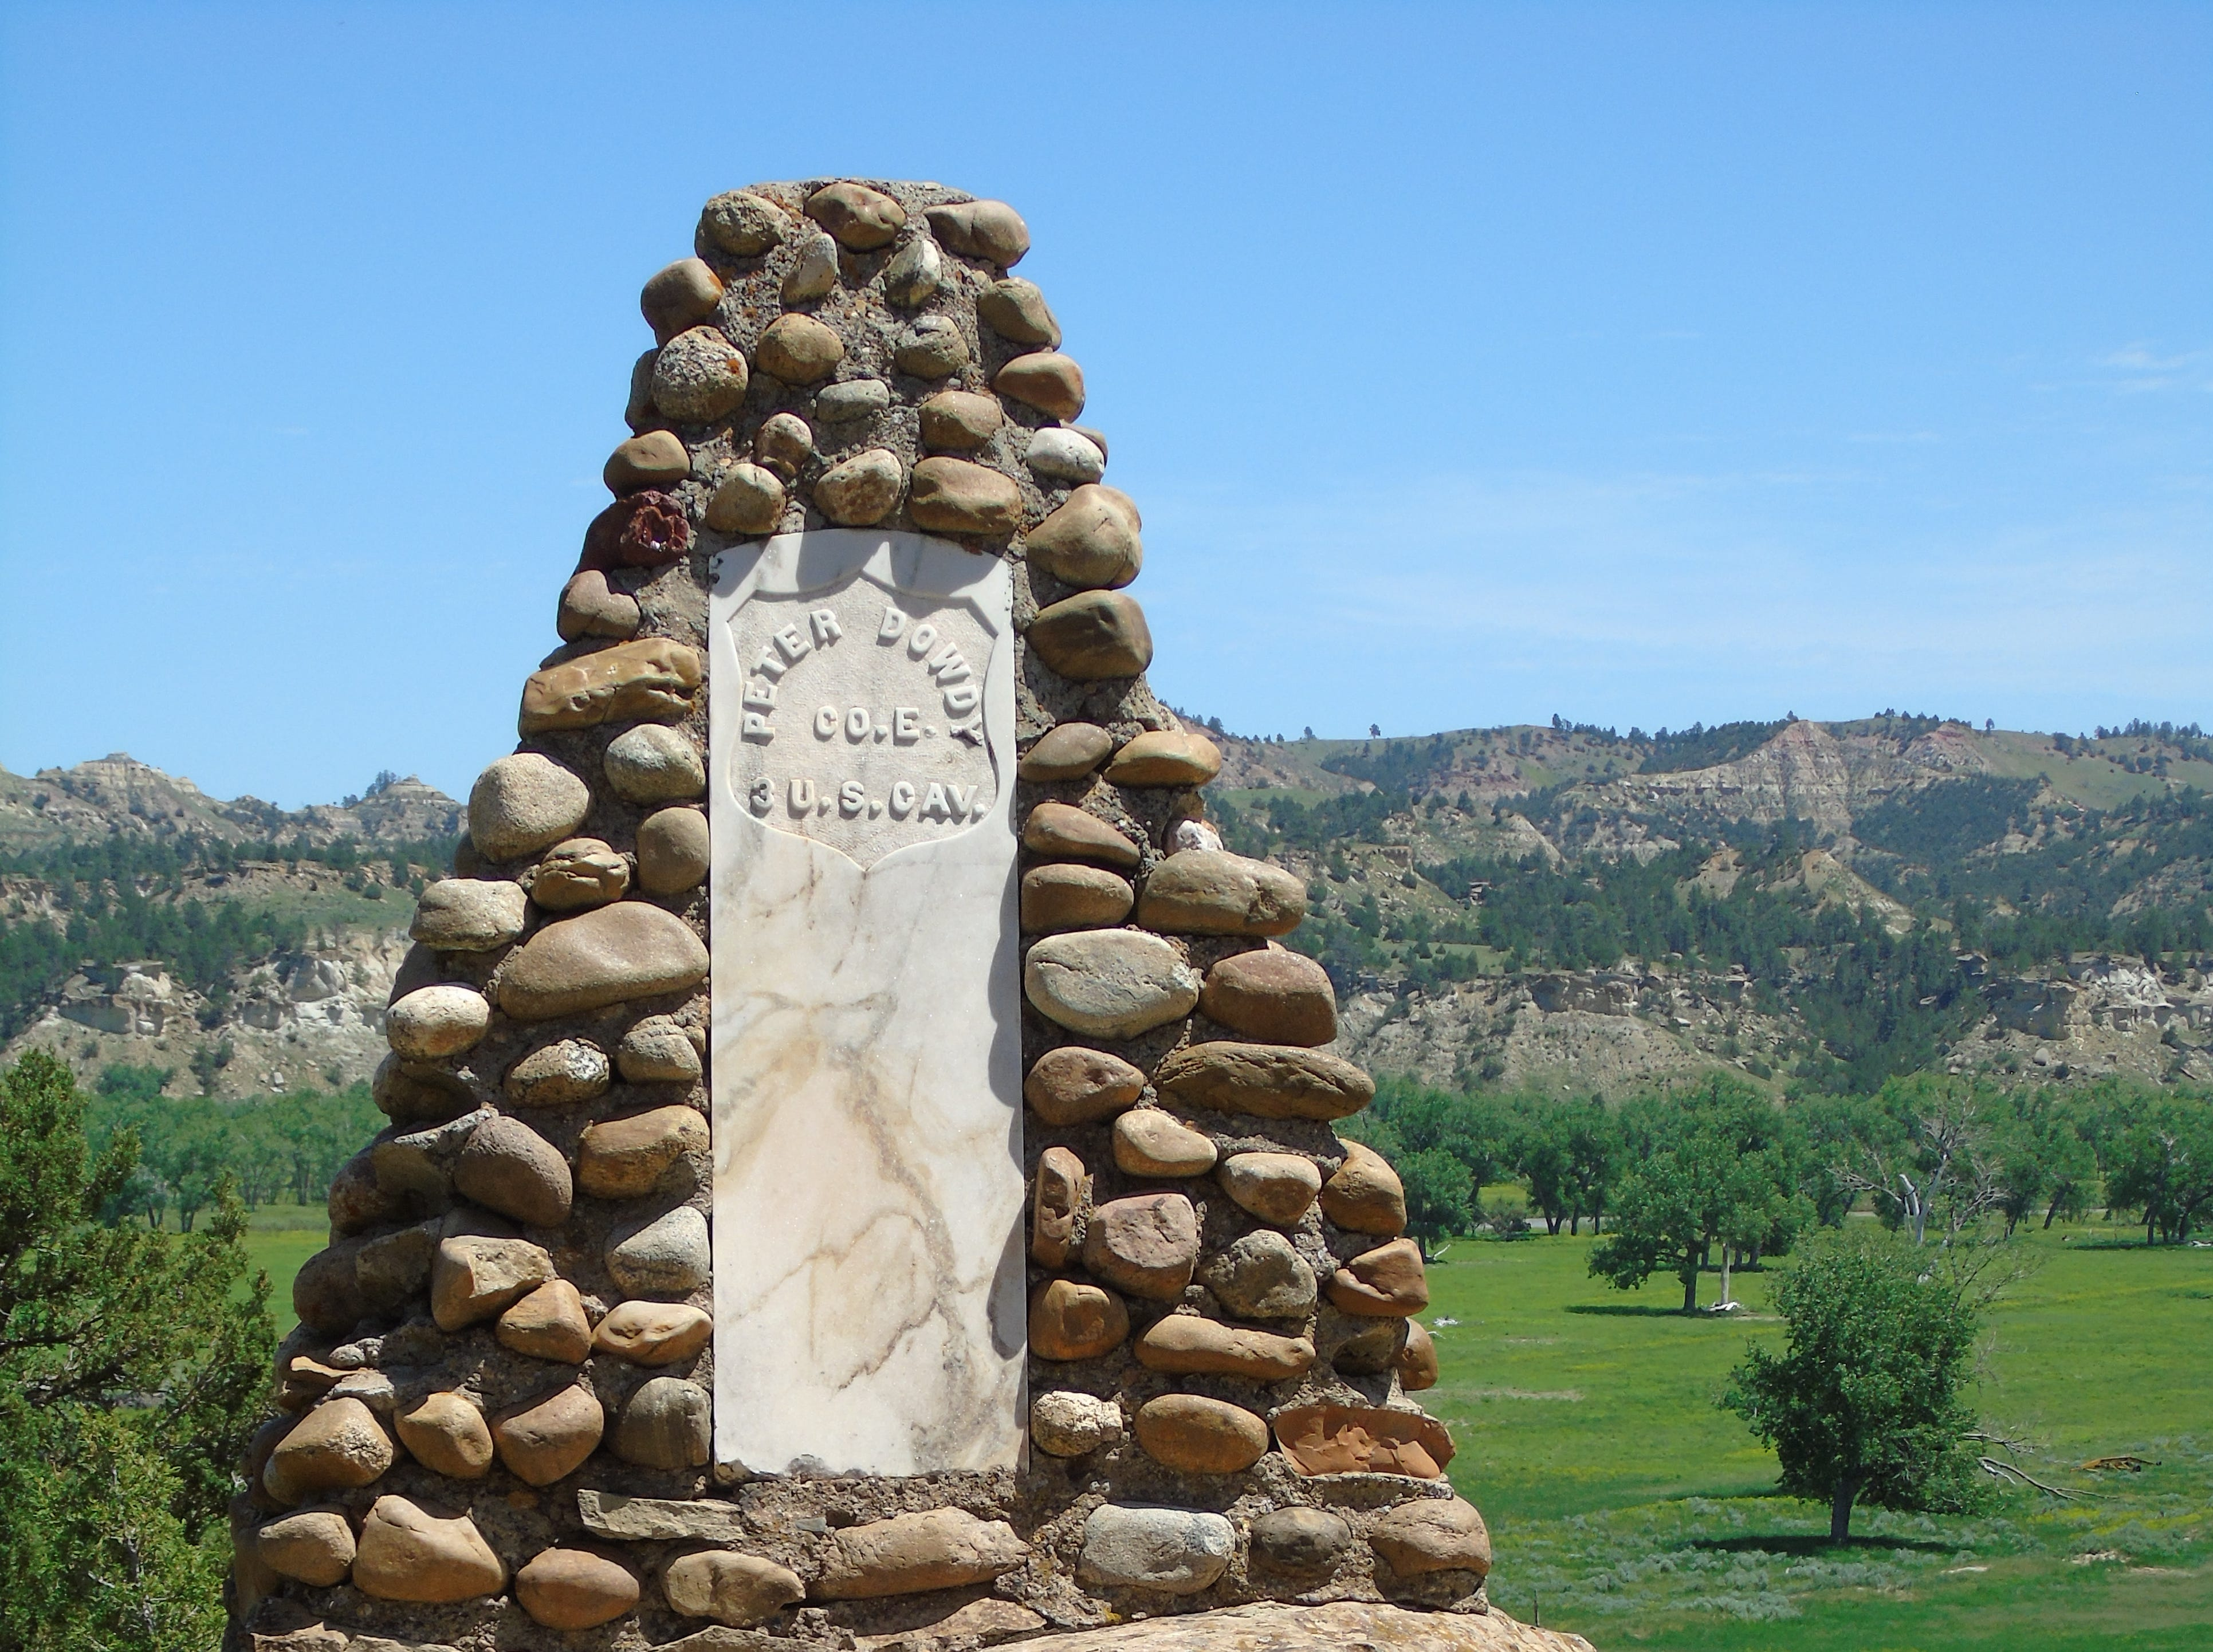 A marker recognizes four soldiers led by Col. Joseph Reynolds who were killed by Cheyenne/Sioux warriors along the Powder River on March 16, 1876. It was the first of three U.S. Cavalry defeats that year, culminating in the Battle of the Little Bighorn.